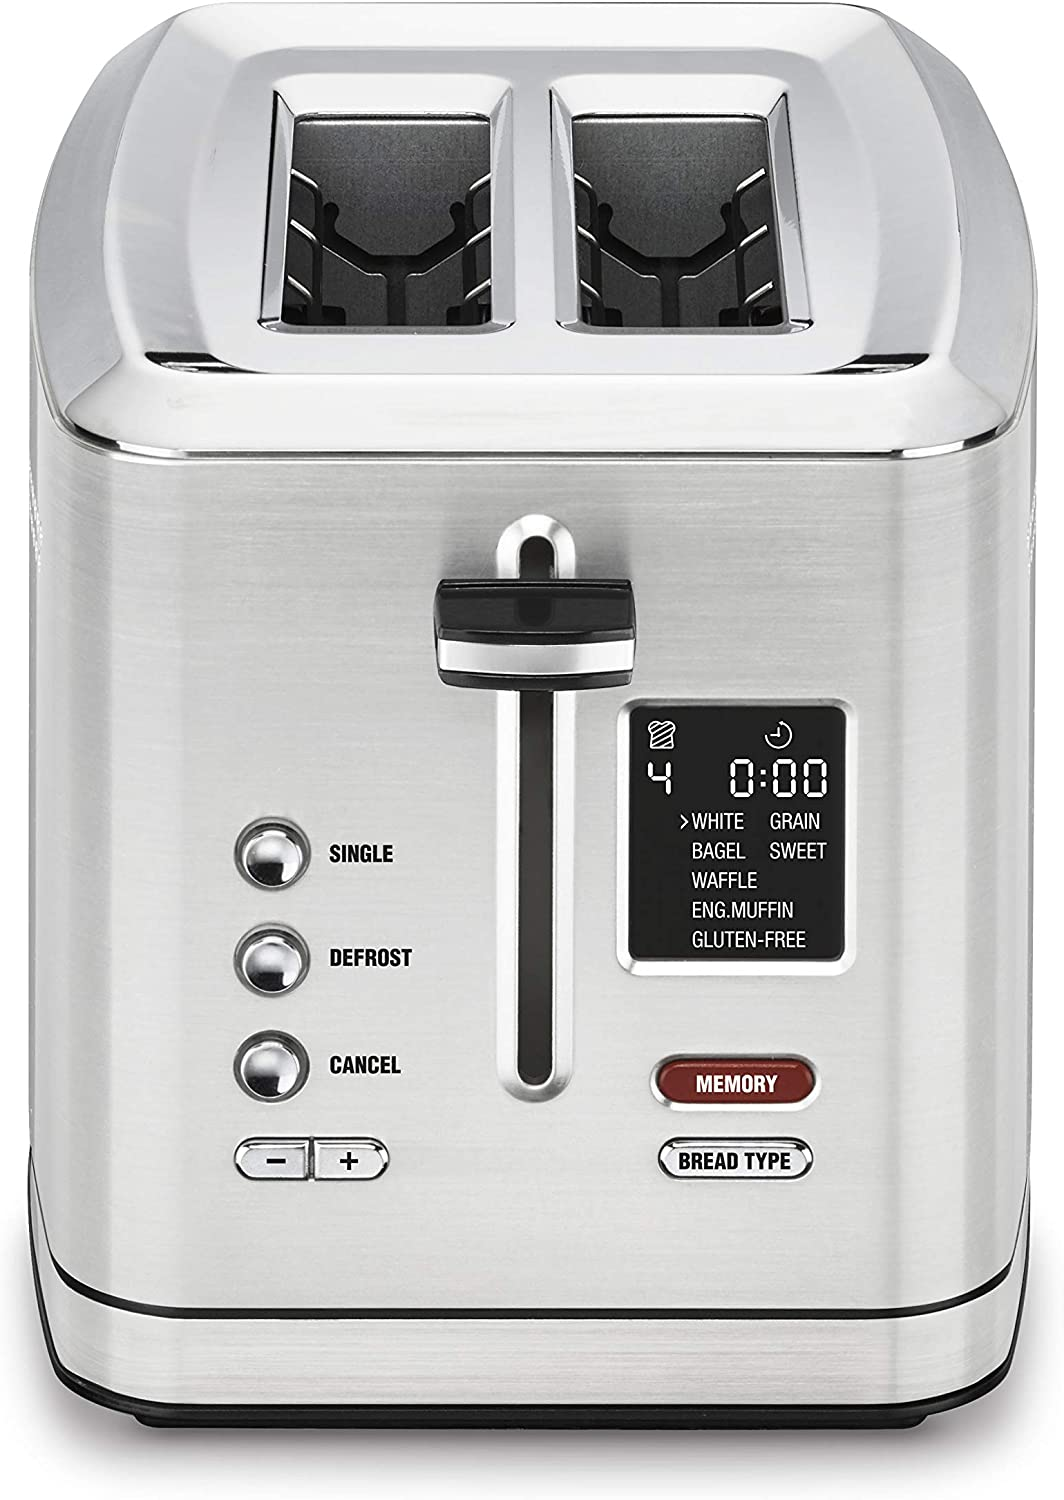 Cuisinart CPT-720 2-Slice Digital Toaster with MemorySet Feature, silver